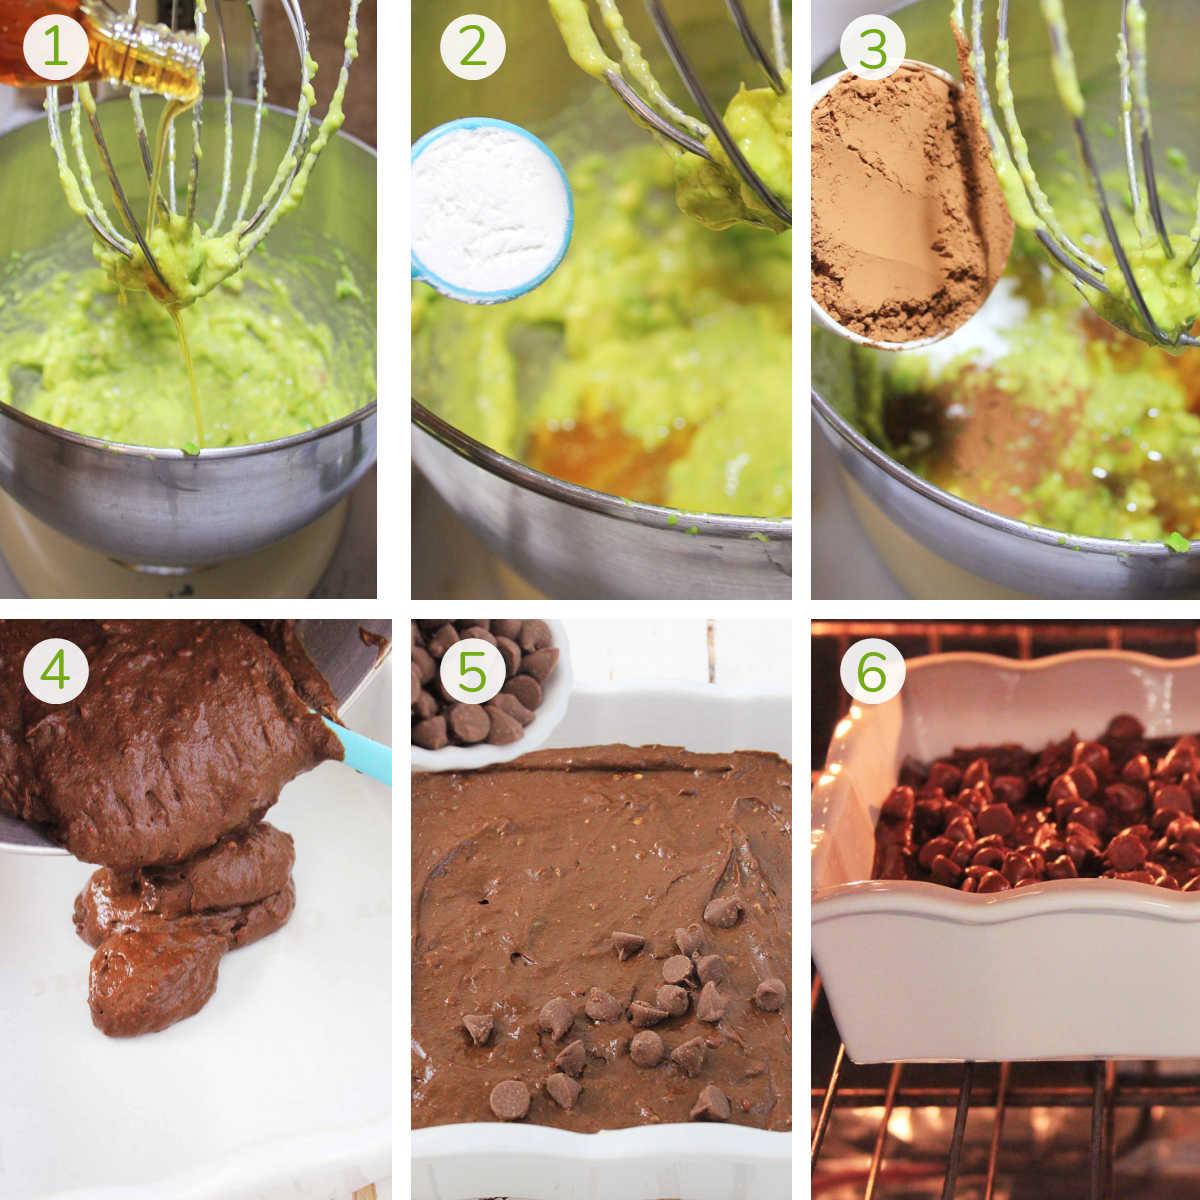 process photos showing mixing the ingredients, adding it to a baking dish, sprinkling on chocolate chips and baking.